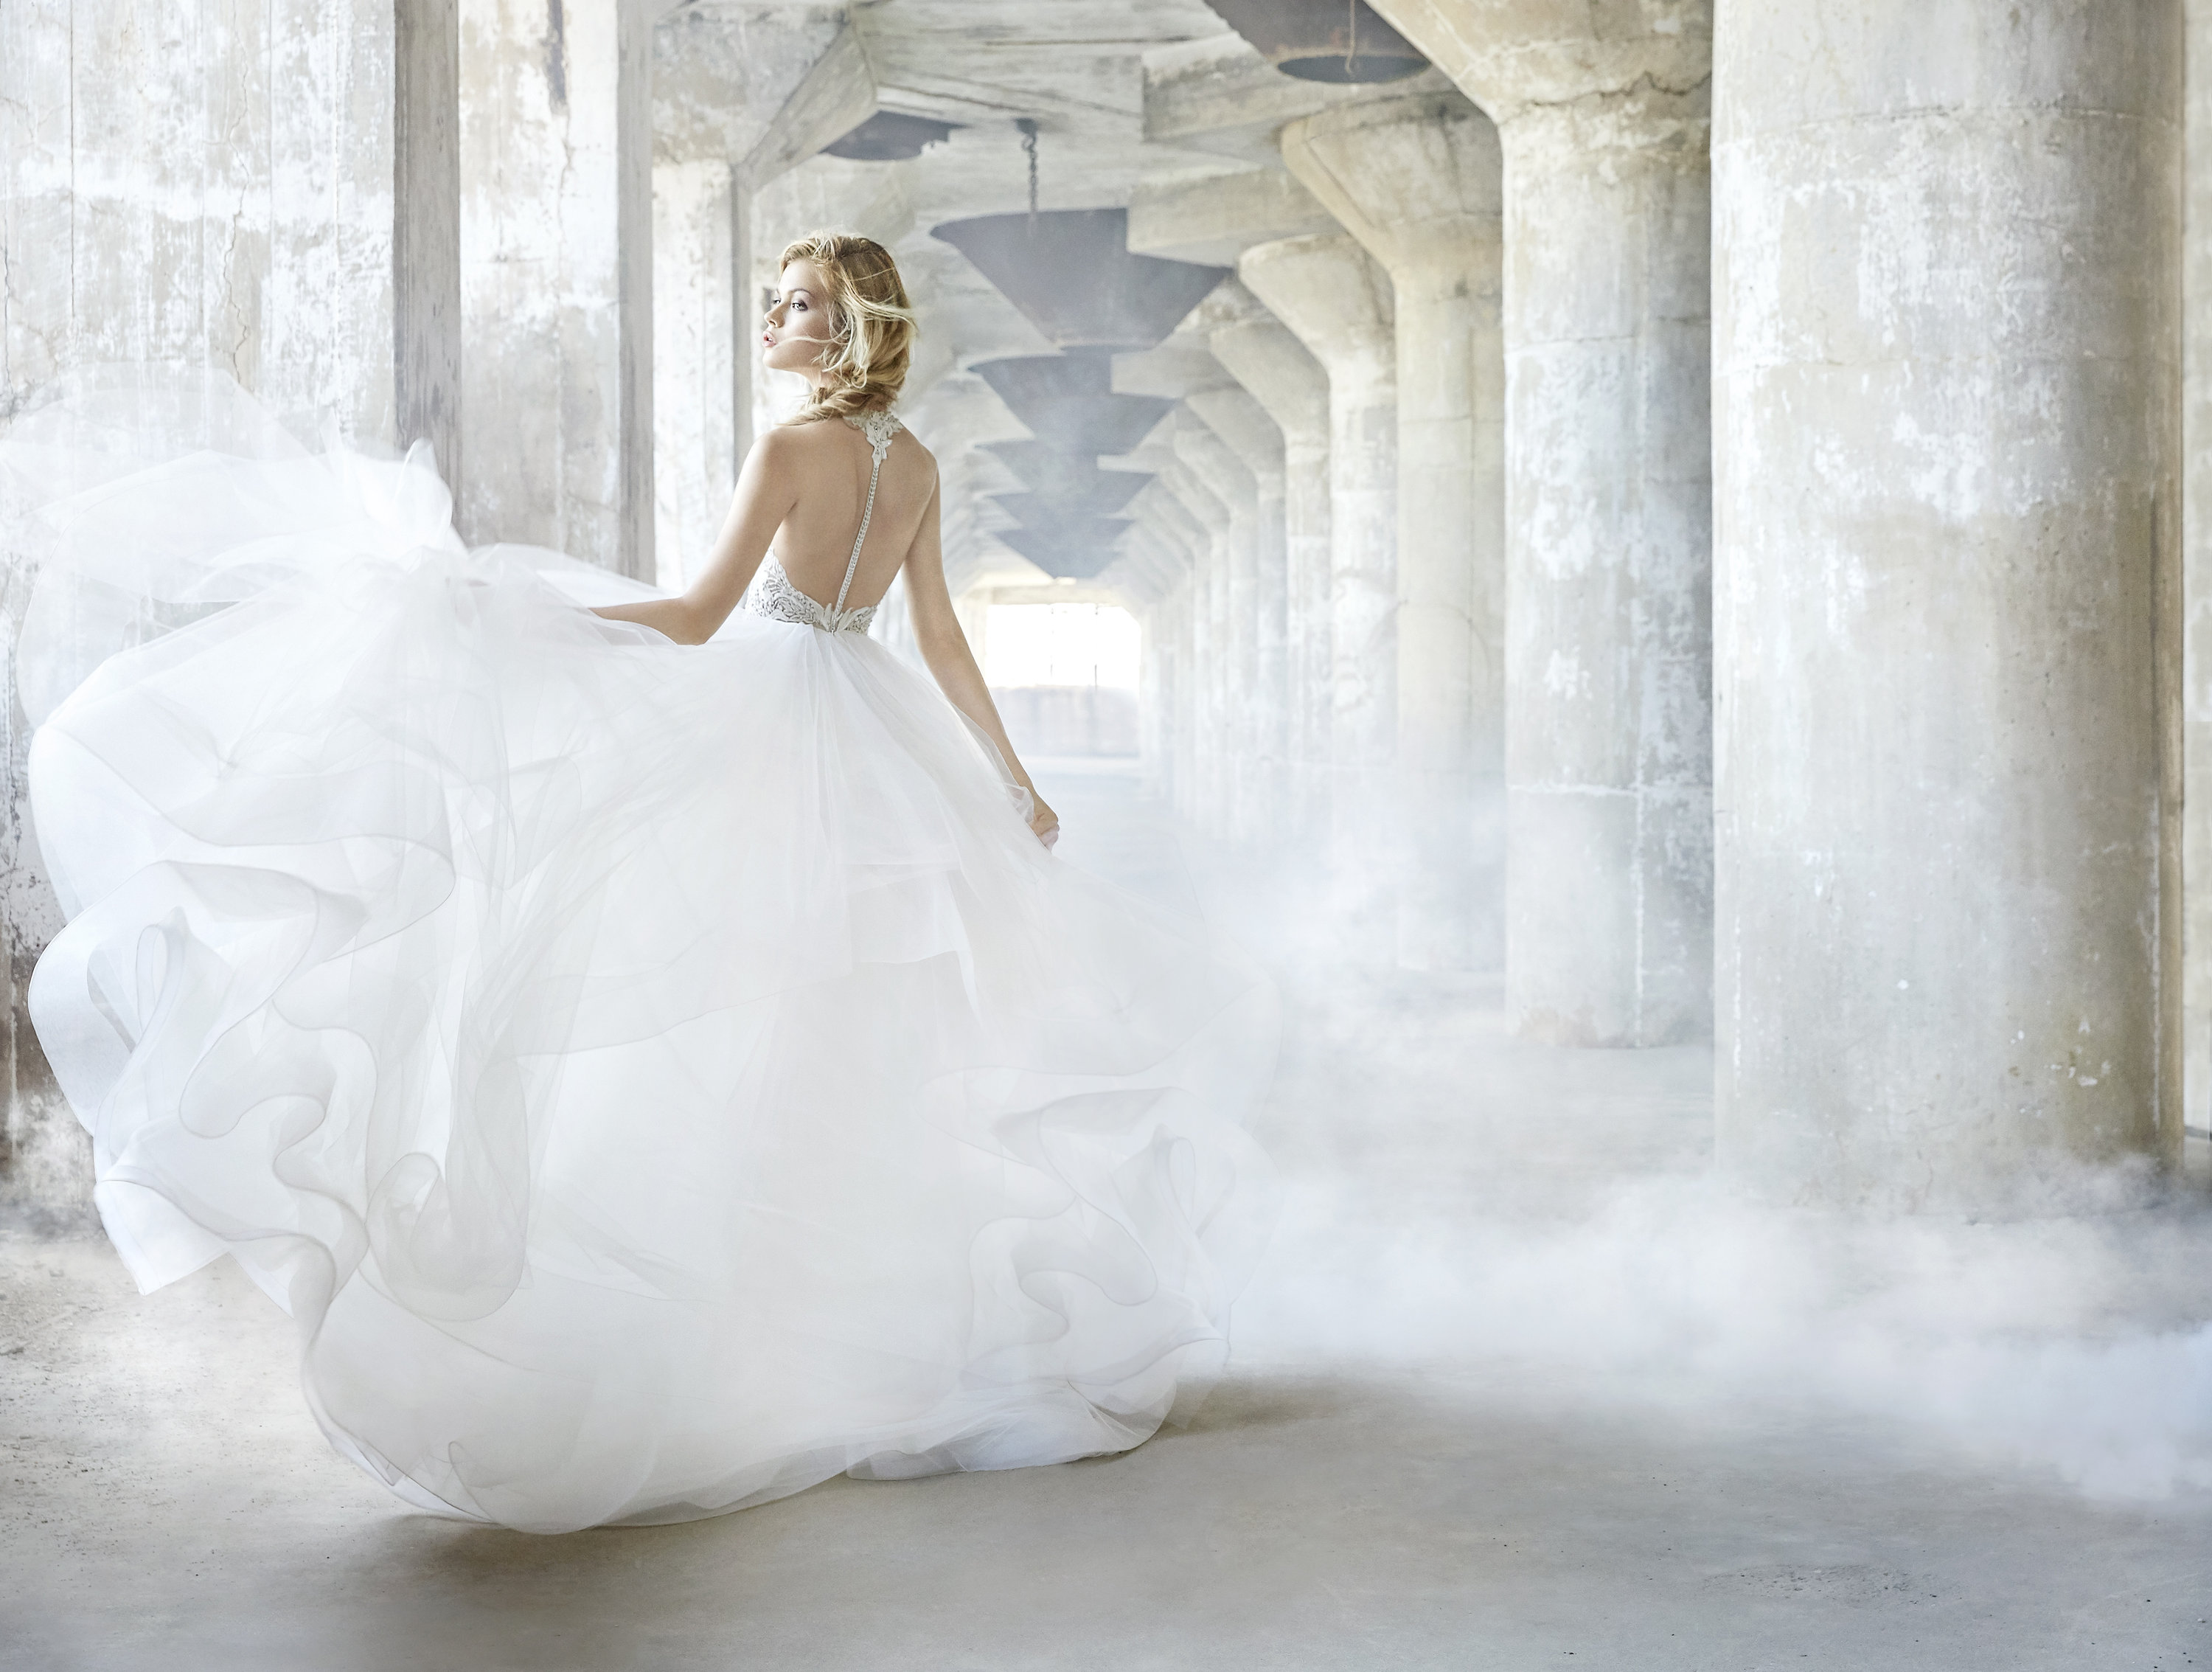 Bridal Gowns and Wedding Dresses by JLM Couture - Style 6763 Jax